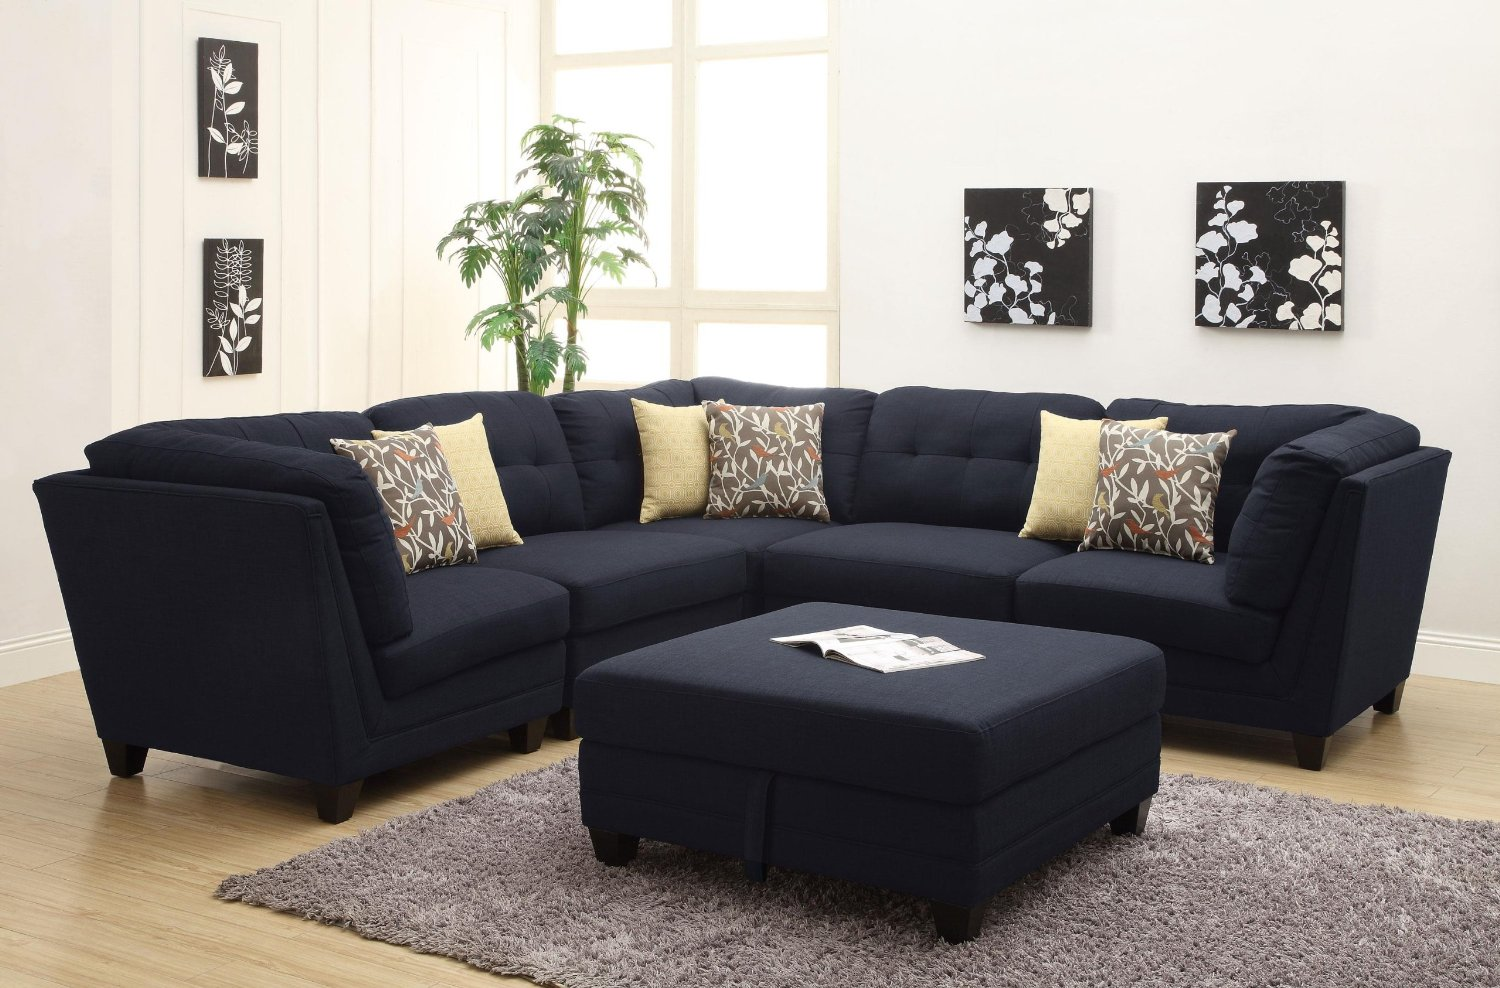 Most comfortable sofas homesfeed for Most comfortable couches for sale